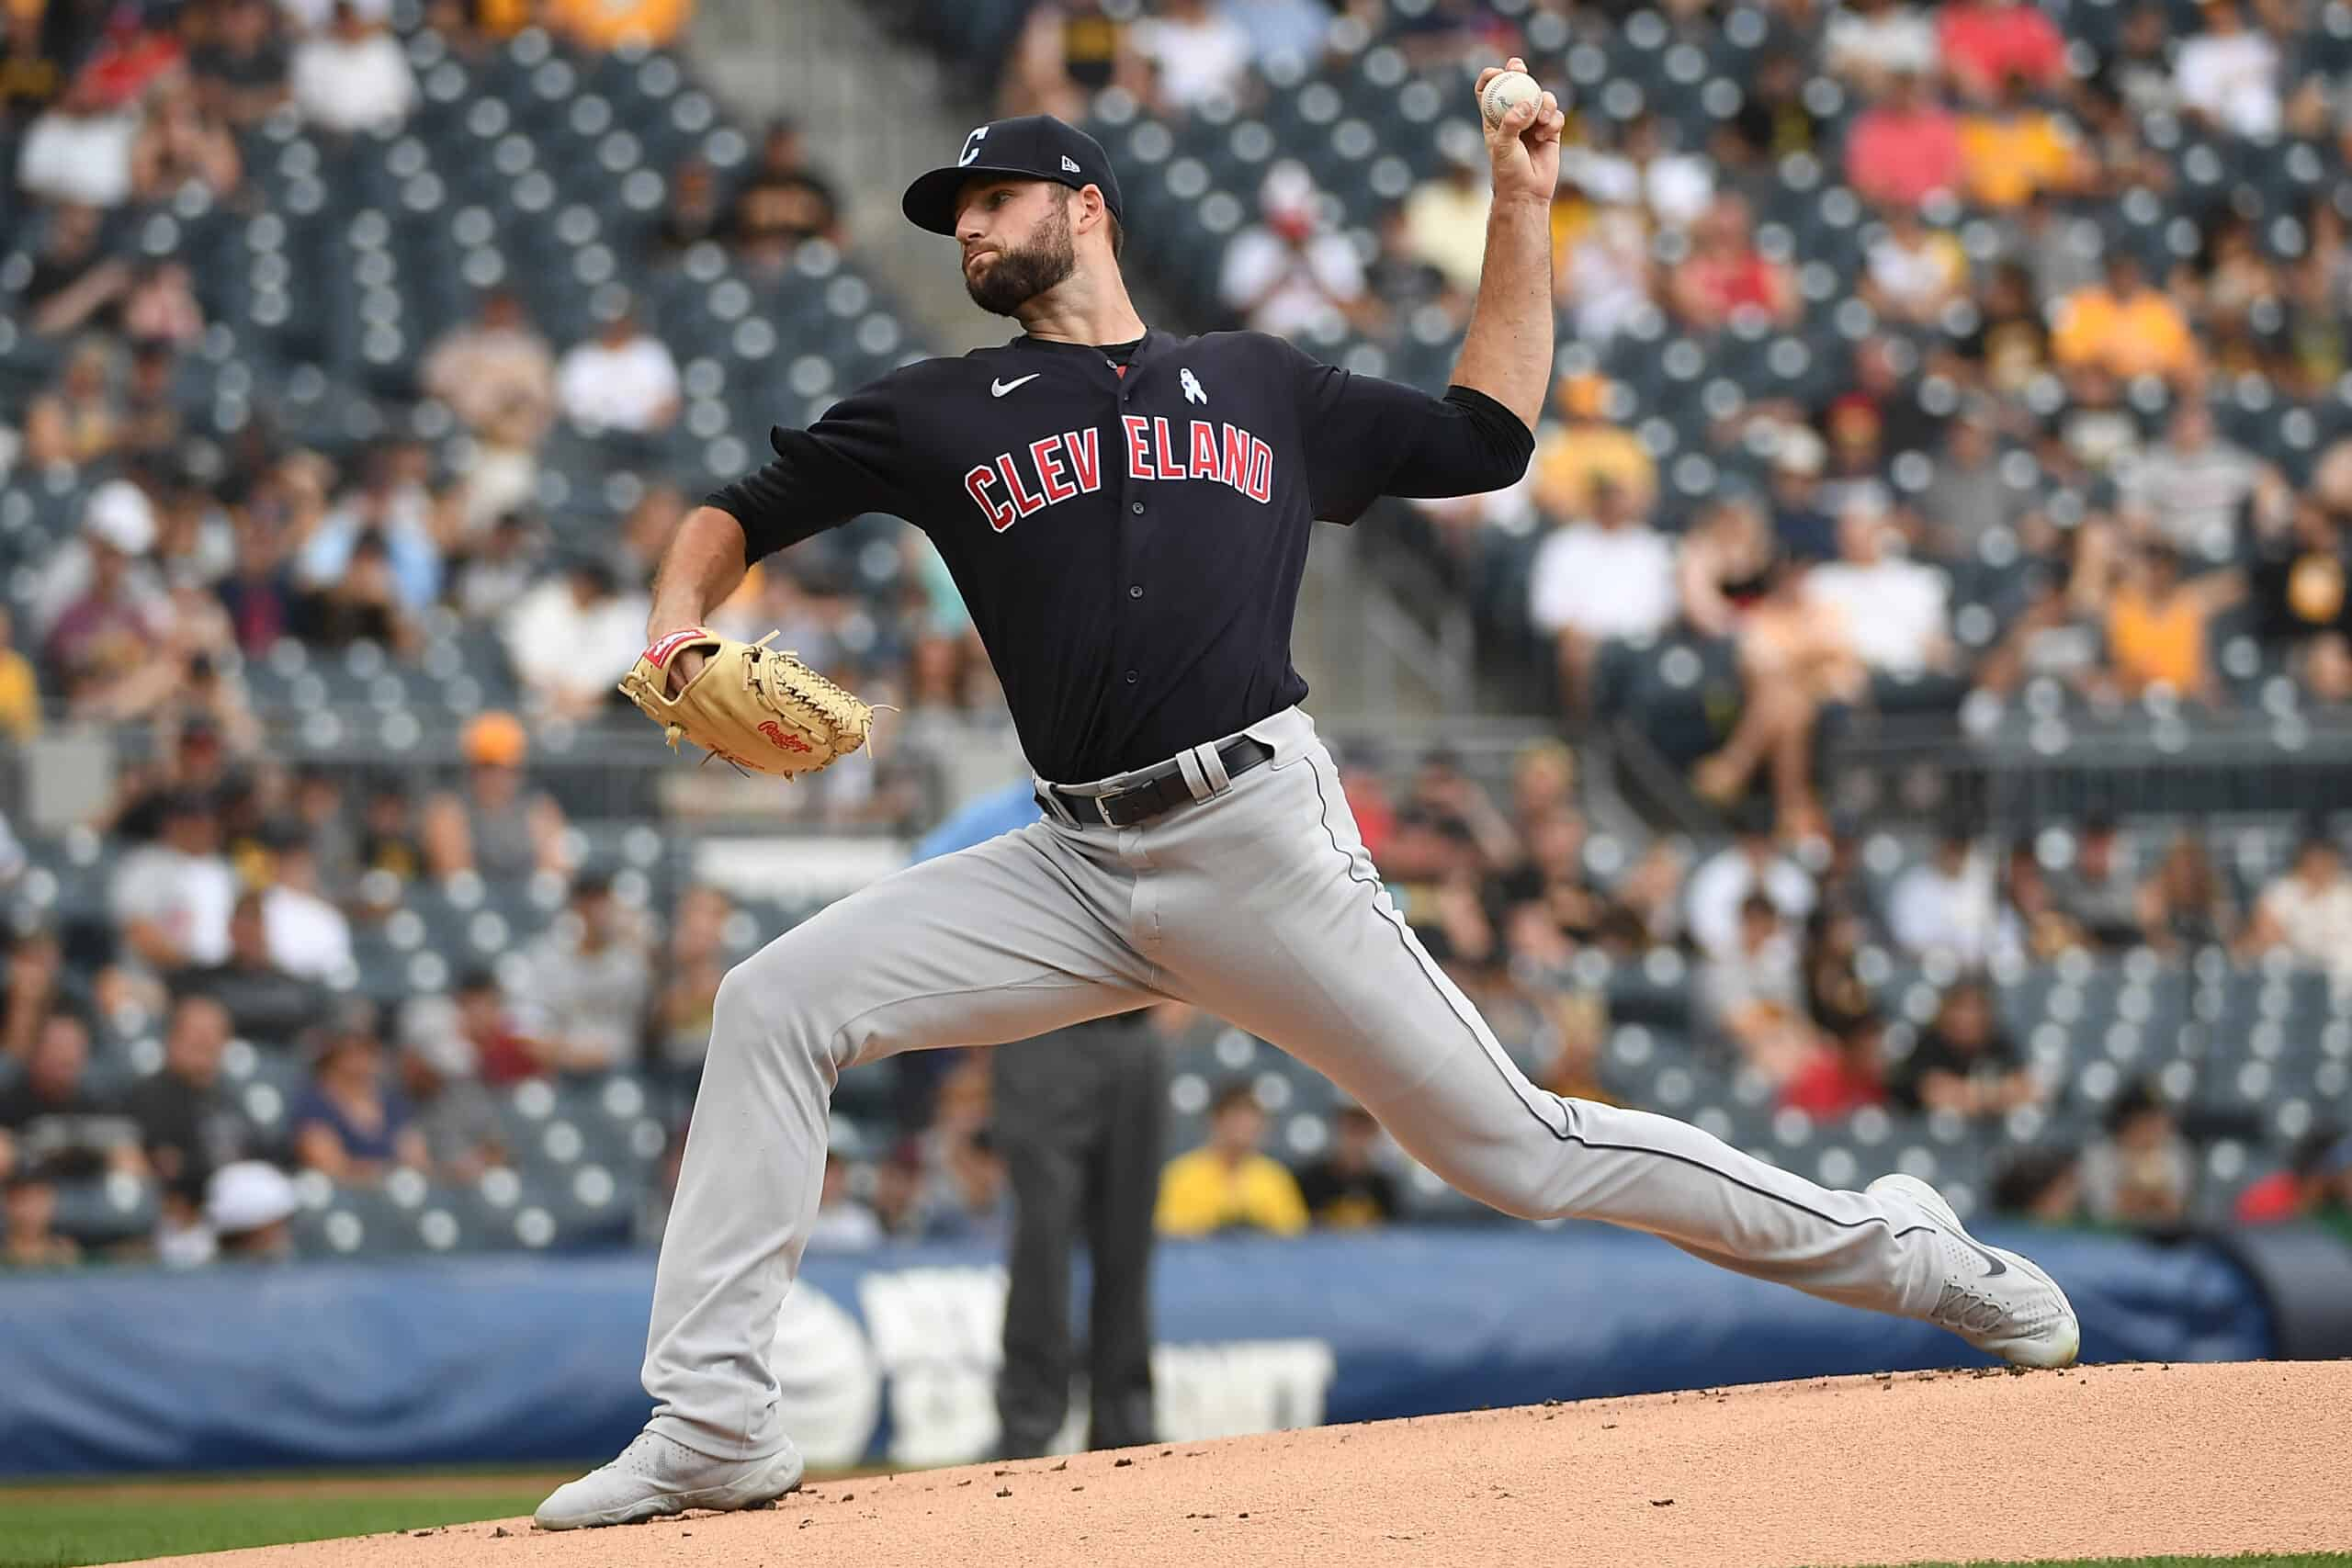 Sam Hentges #31 of the Cleveland Indians delivers a pitch in the first inning during the game against the Pittsburgh Pirates at PNC Park on June 20, 2021 in Pittsburgh, Pennsylvania.